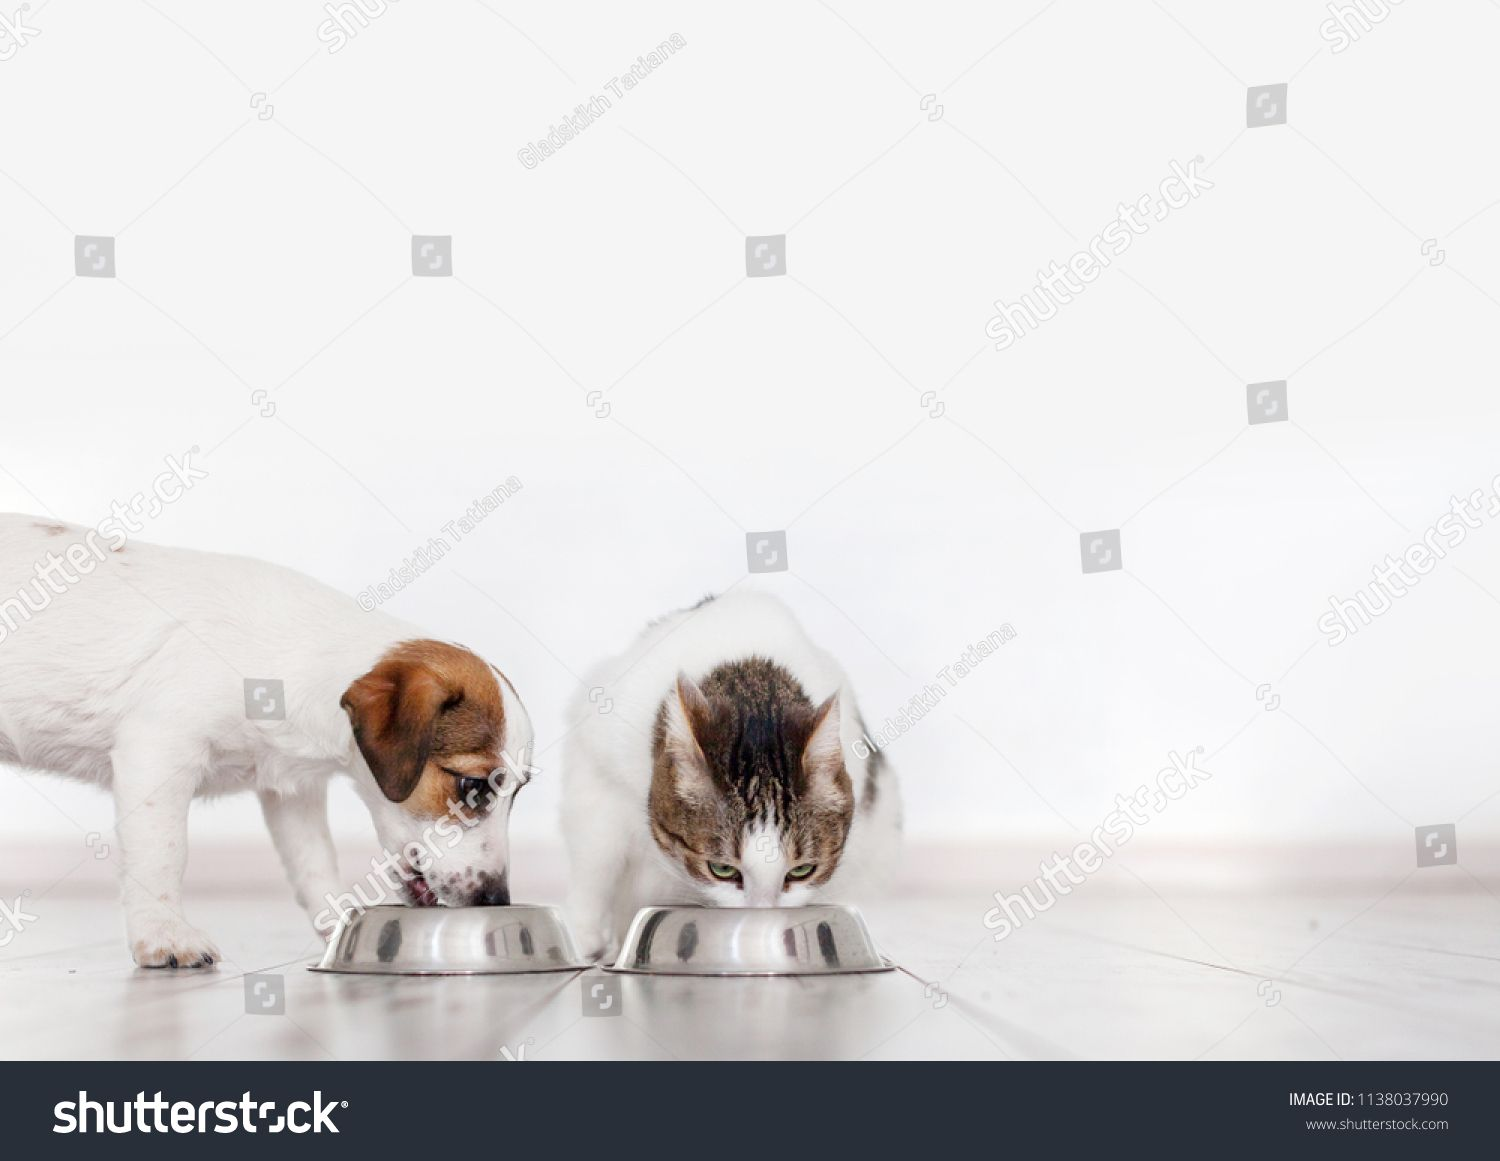 Dog And Cat Eating Food Puppy Eating Dogs Food Pets At Homeeating Food Dog Cat Dog Cat Puppies Dogs